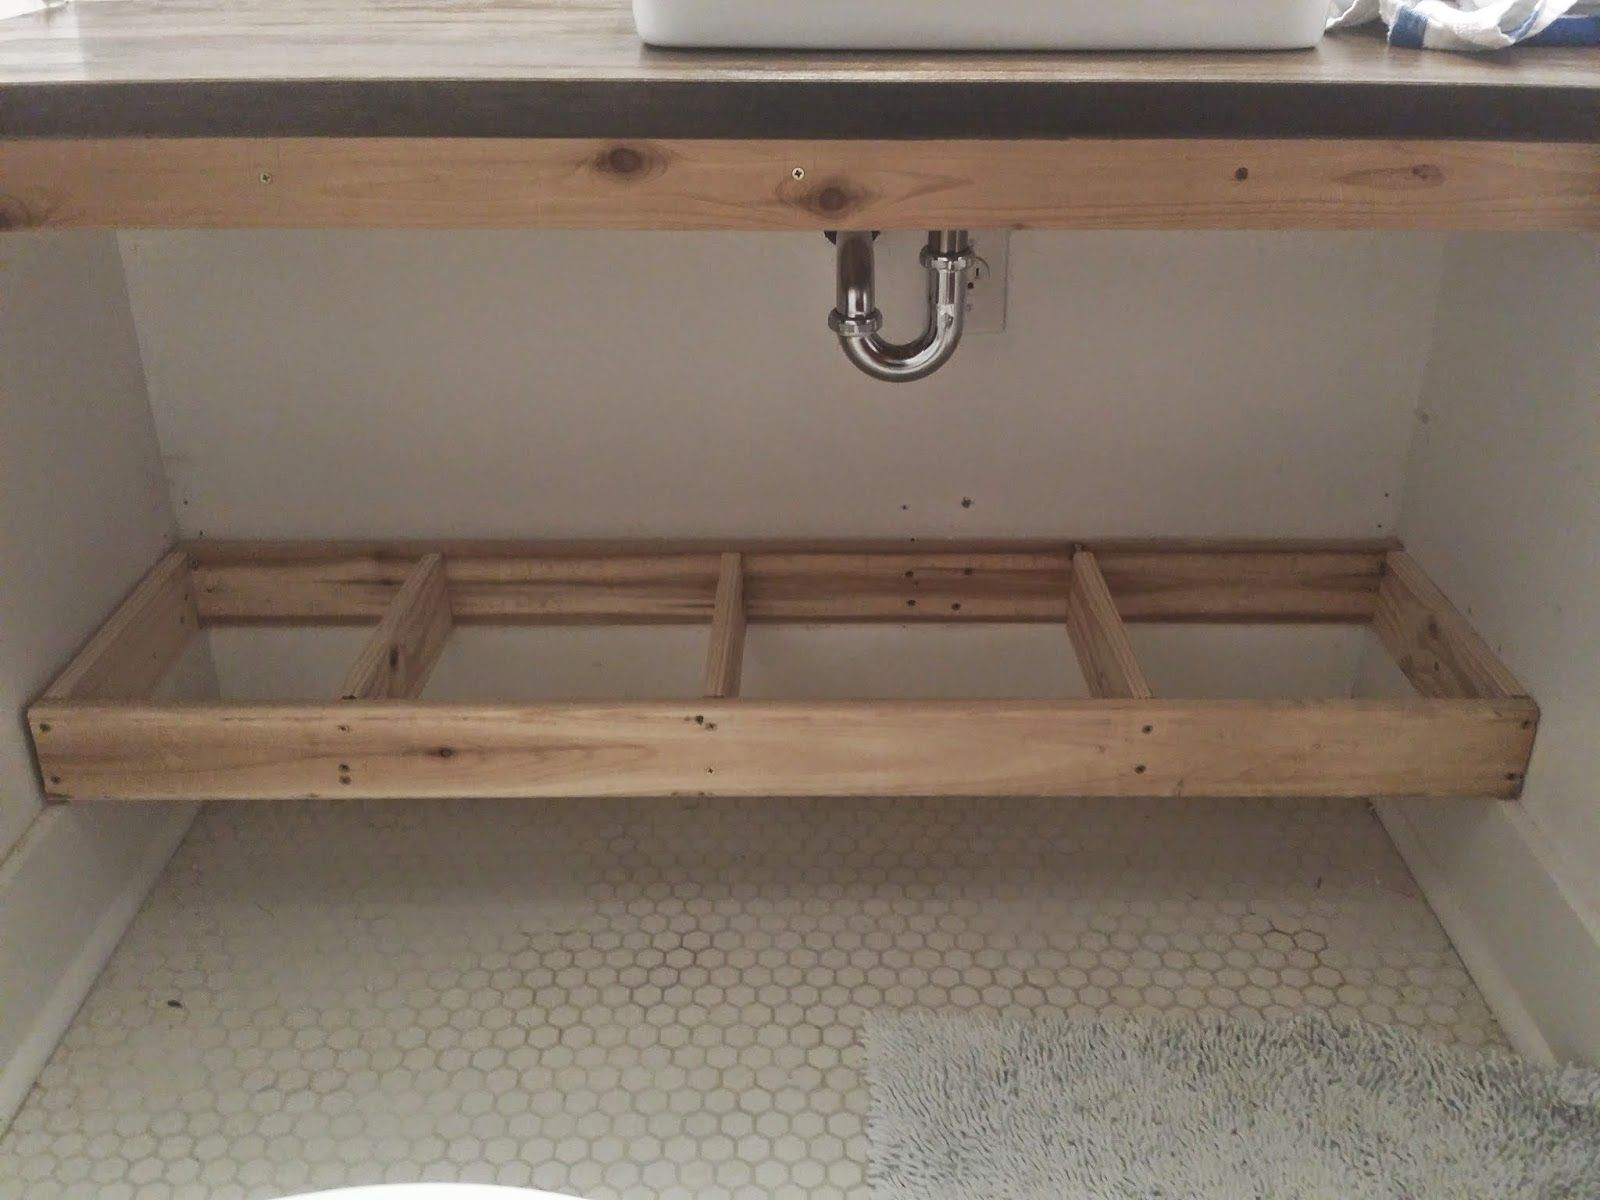 Building a floating bathroom vanity - How To Built The Conservatory Vanity If We Recess The Top Supports We Can Hang Diy Bathroom